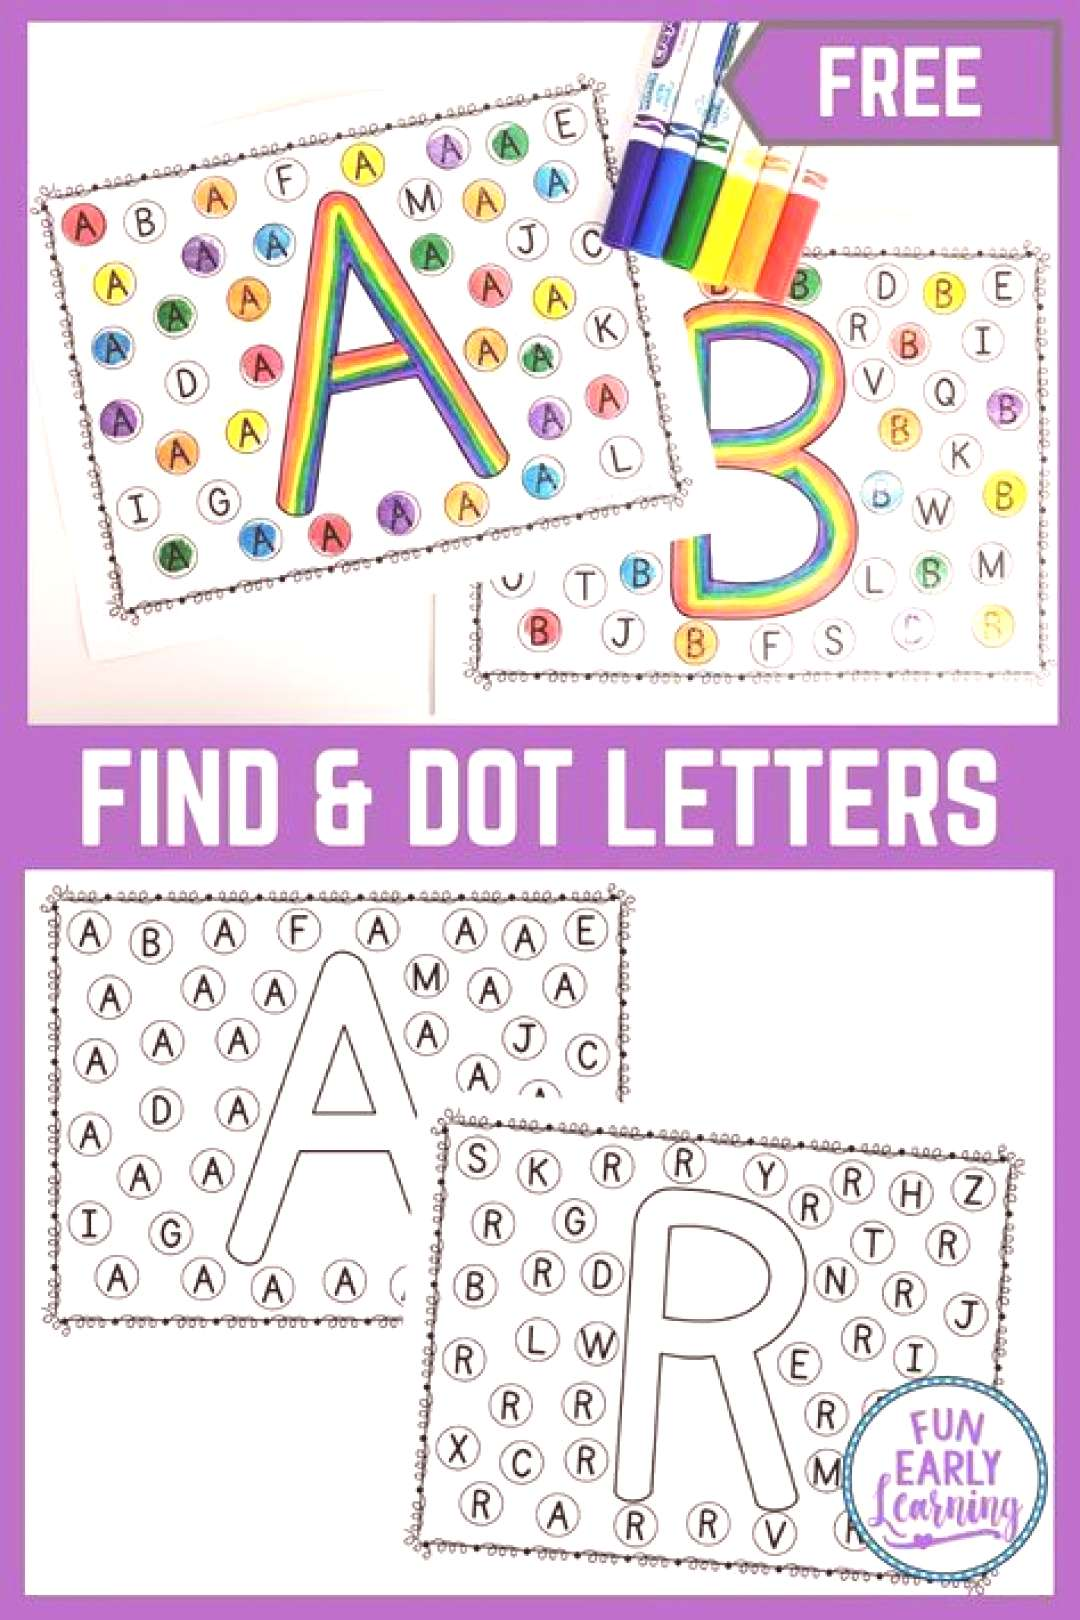 Find and align matching letters - Alphabetical activity for early childhood Find and align matching